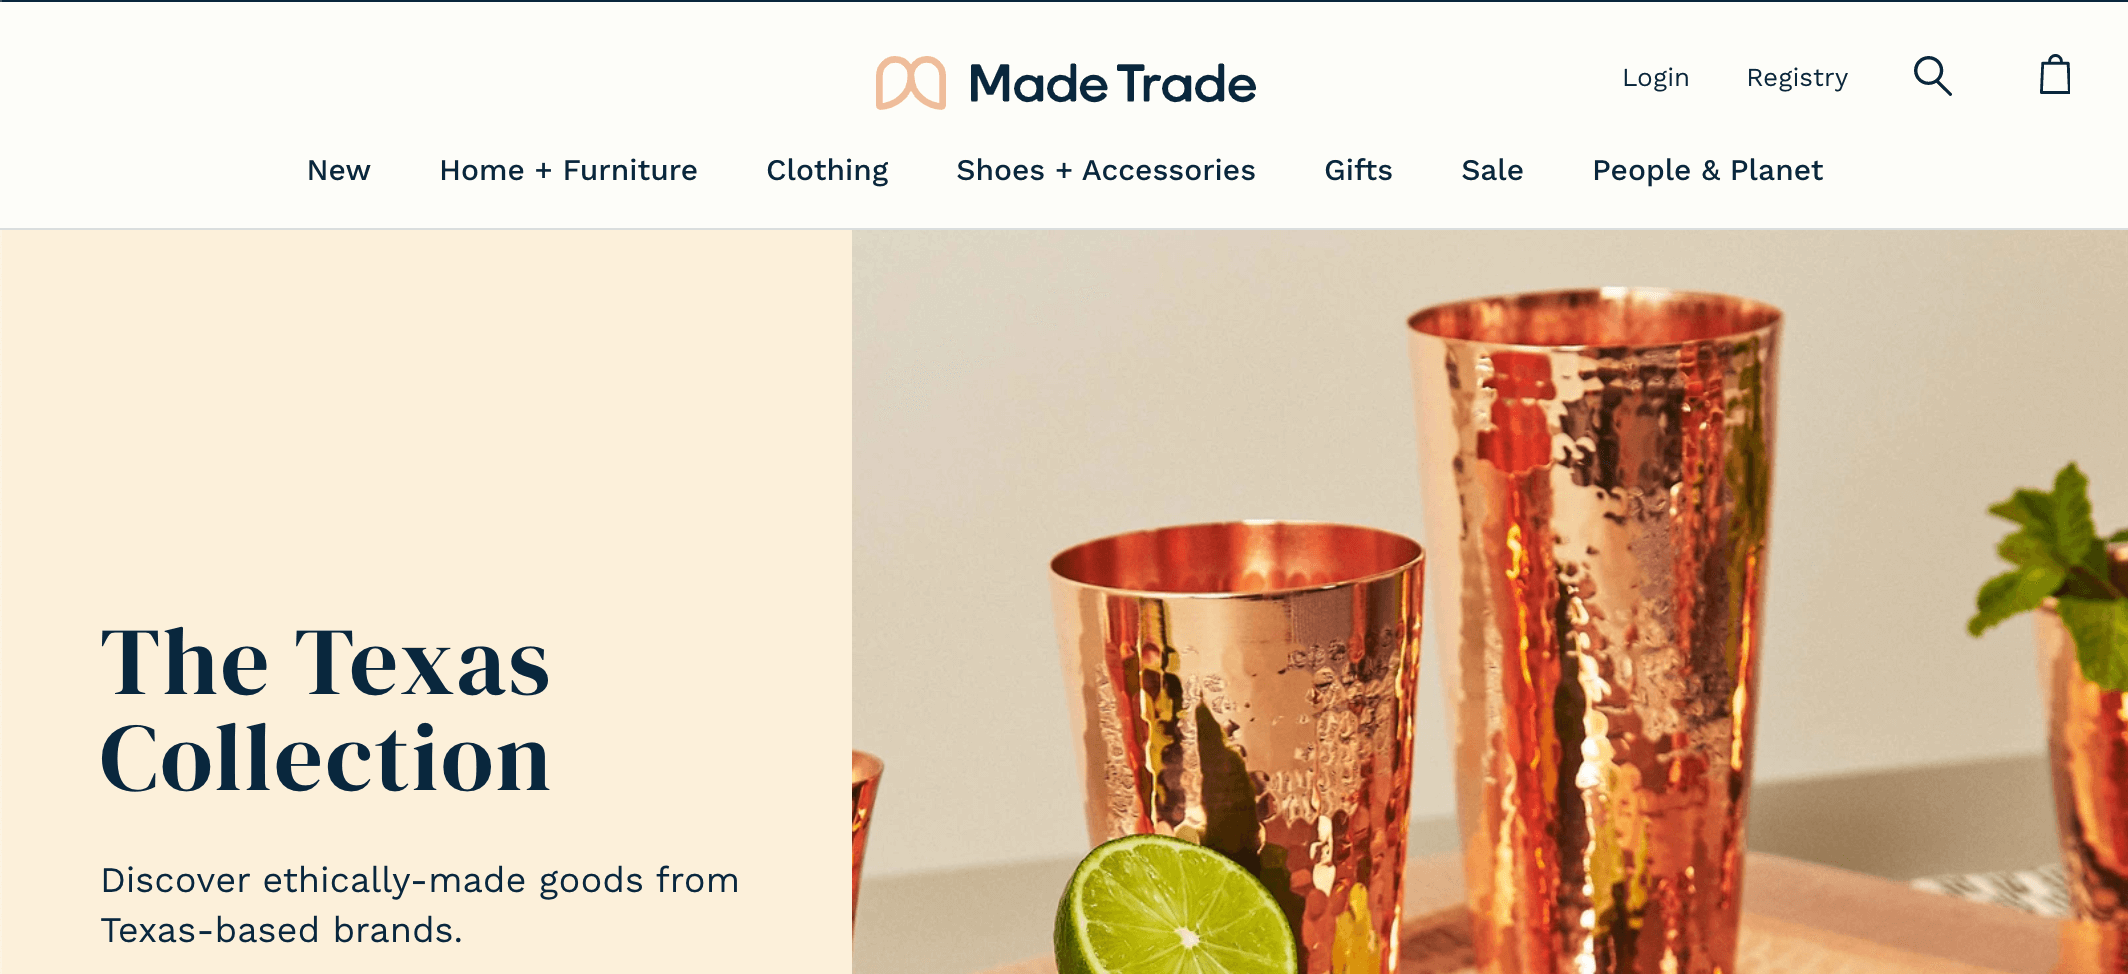 screen shot of made trade website